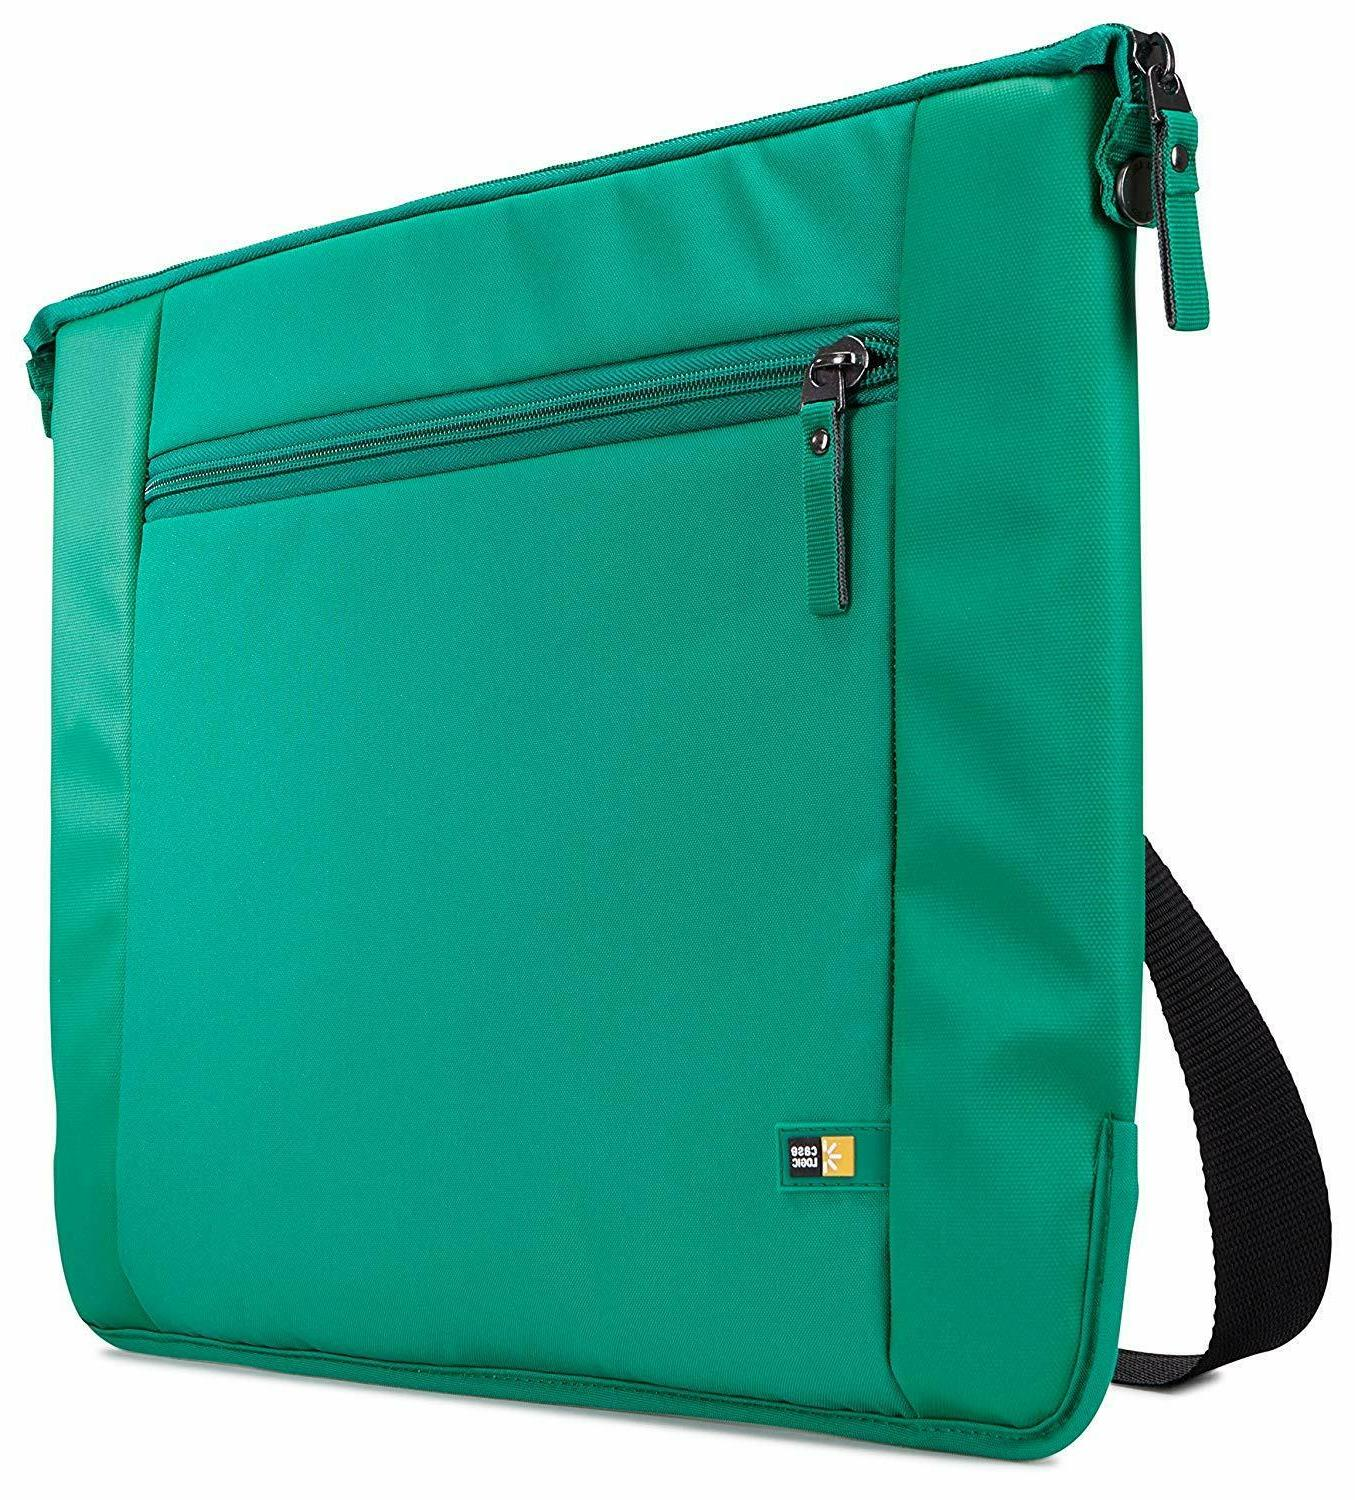 Case Logic Intrata 14 Inch Laptop Bag